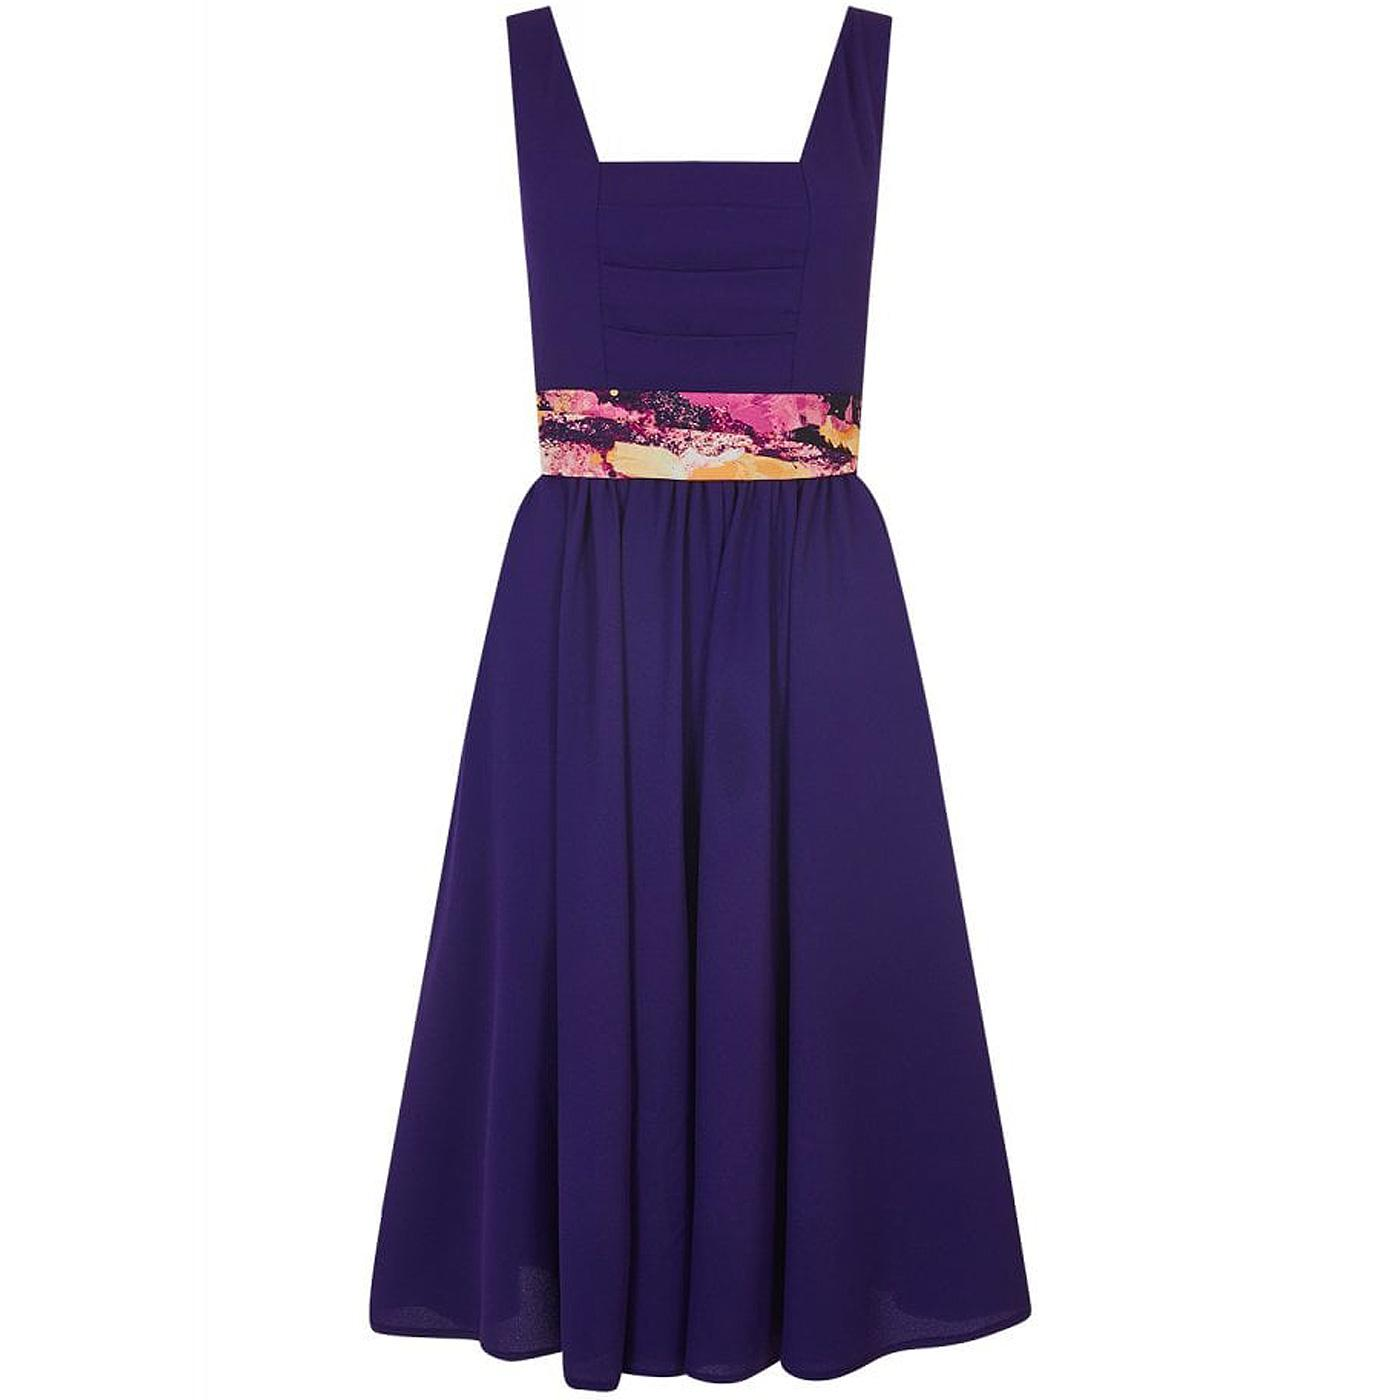 Eden BRIGHT & BEAUTIFUL Retro 70s Swing Dress